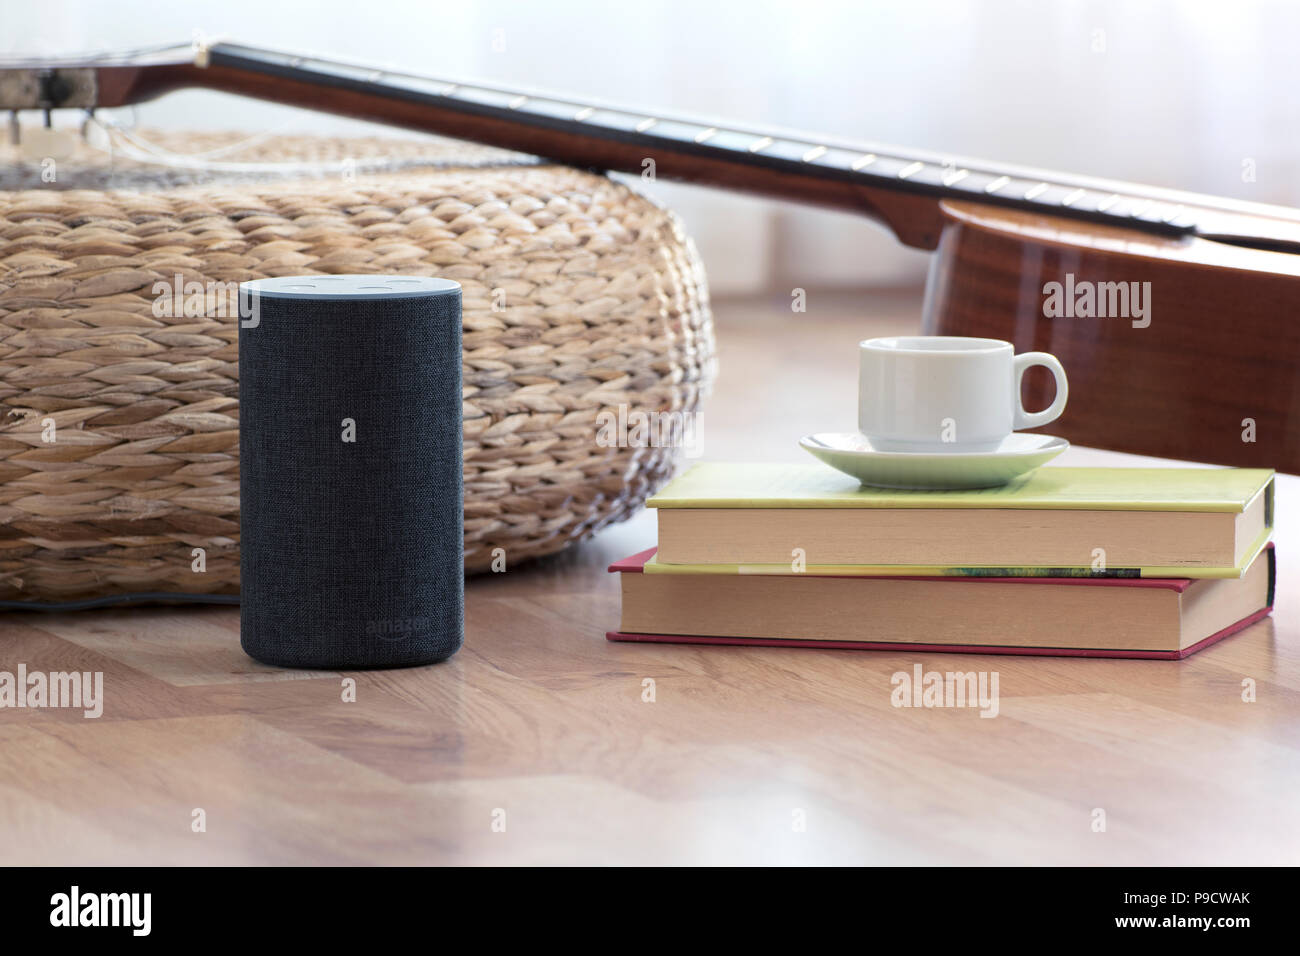 Amazon Bilder Wohnzimmer Barcelona Juli 2018 Amazon Echo Smart Home Alexa Voice Service